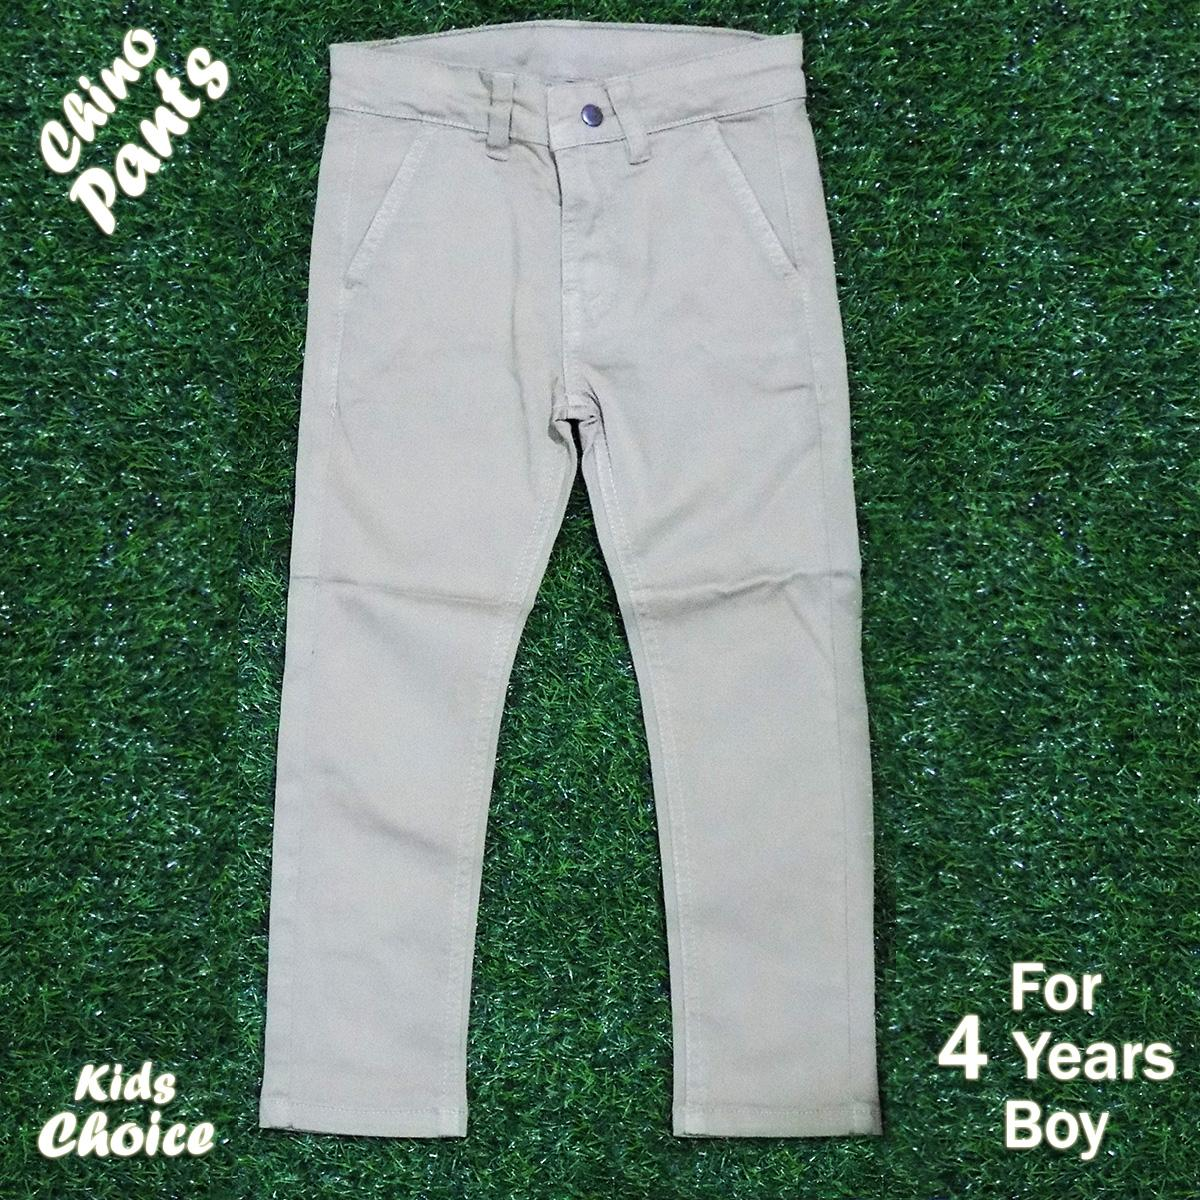 Kids Choice Cotton Chino Pants For 4 Years Boy